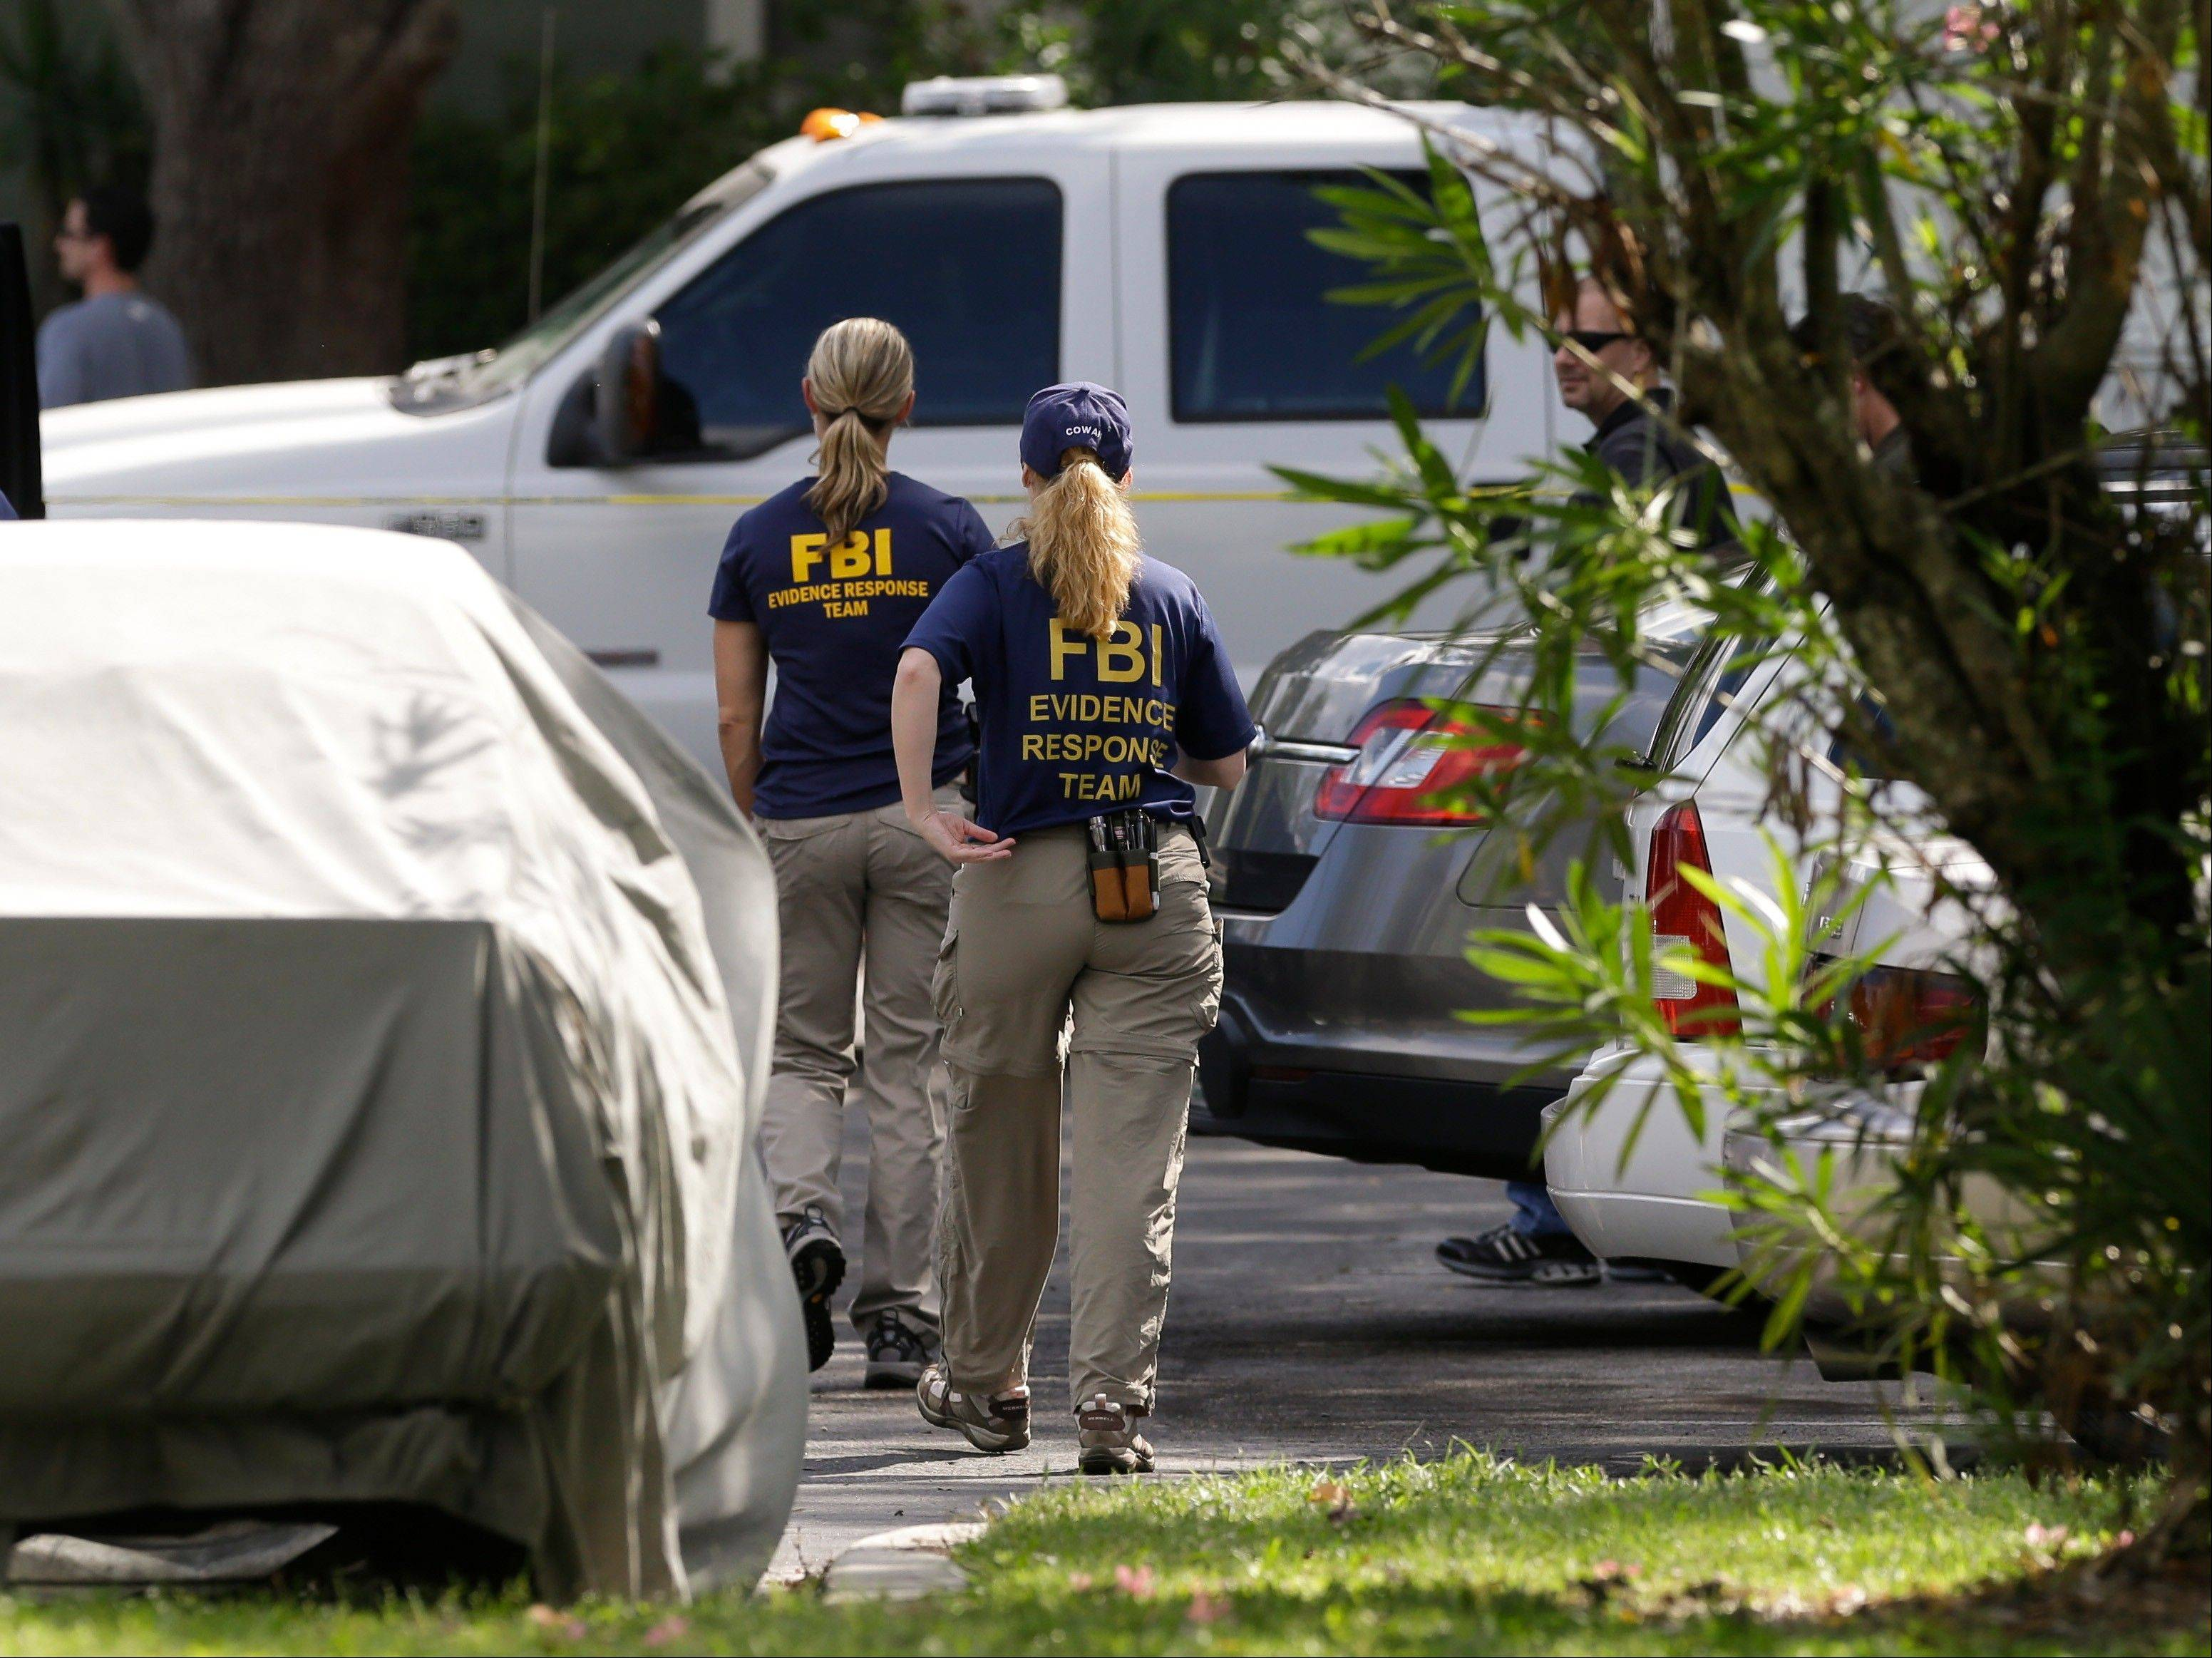 FBI investigators walk near the crime scene of an apartment where a man was shot by an FBI agent Wednesday in Orlando, Fla. The man who was shot and killed by the agent early this morning was friends with the Boston bombings suspects, according to a friend of the victim.